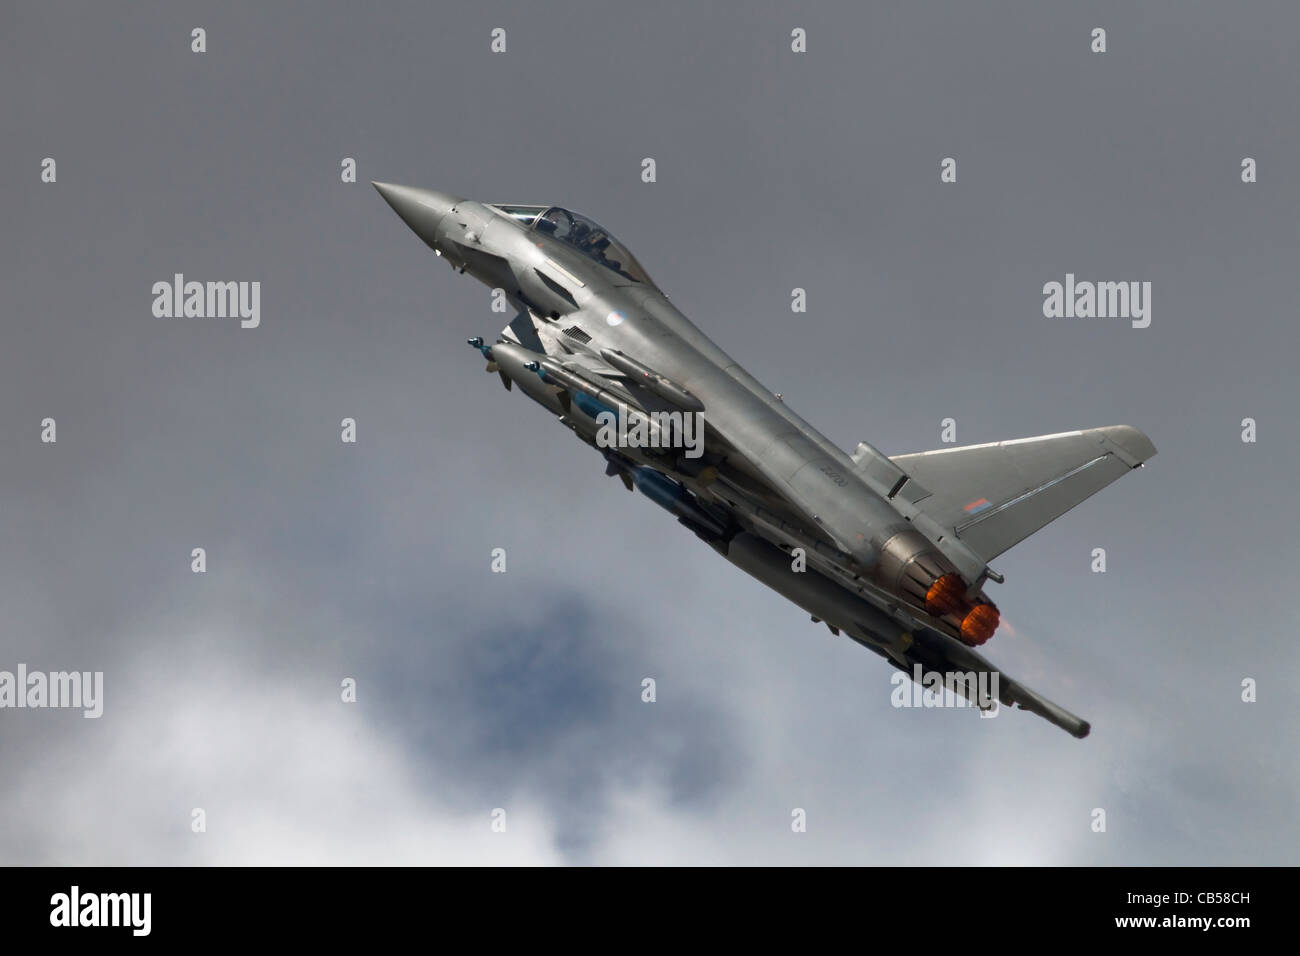 A Bae Systems Typhoon fighter of the RAF climbing away in to dark skies - Stock Image